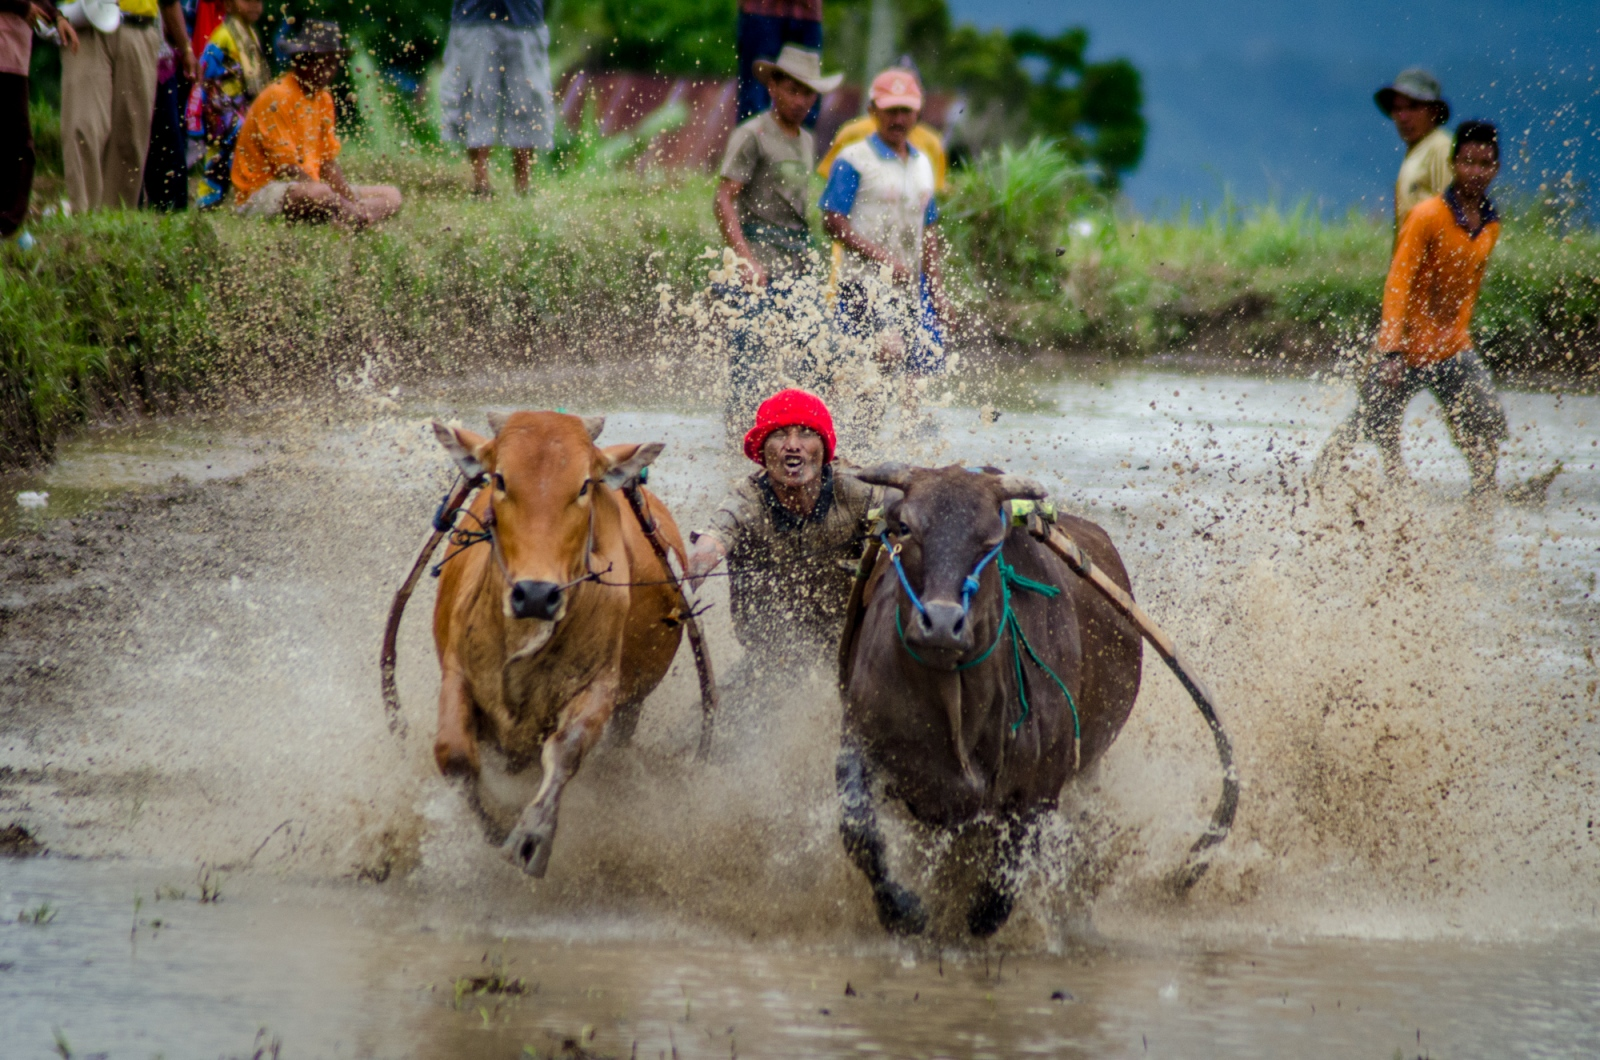 A man takes his first ride of the day, holding on to two powerful bulls by their tails, with his feet on small wooden blocks at the back of the simple wooden harnesses that drape across the backs of the stampeding cattle. The jockey's task is to stay standing behind the bulls for the longest and straightest ride, ideally lasting the entire run, which is about 80 meters long.